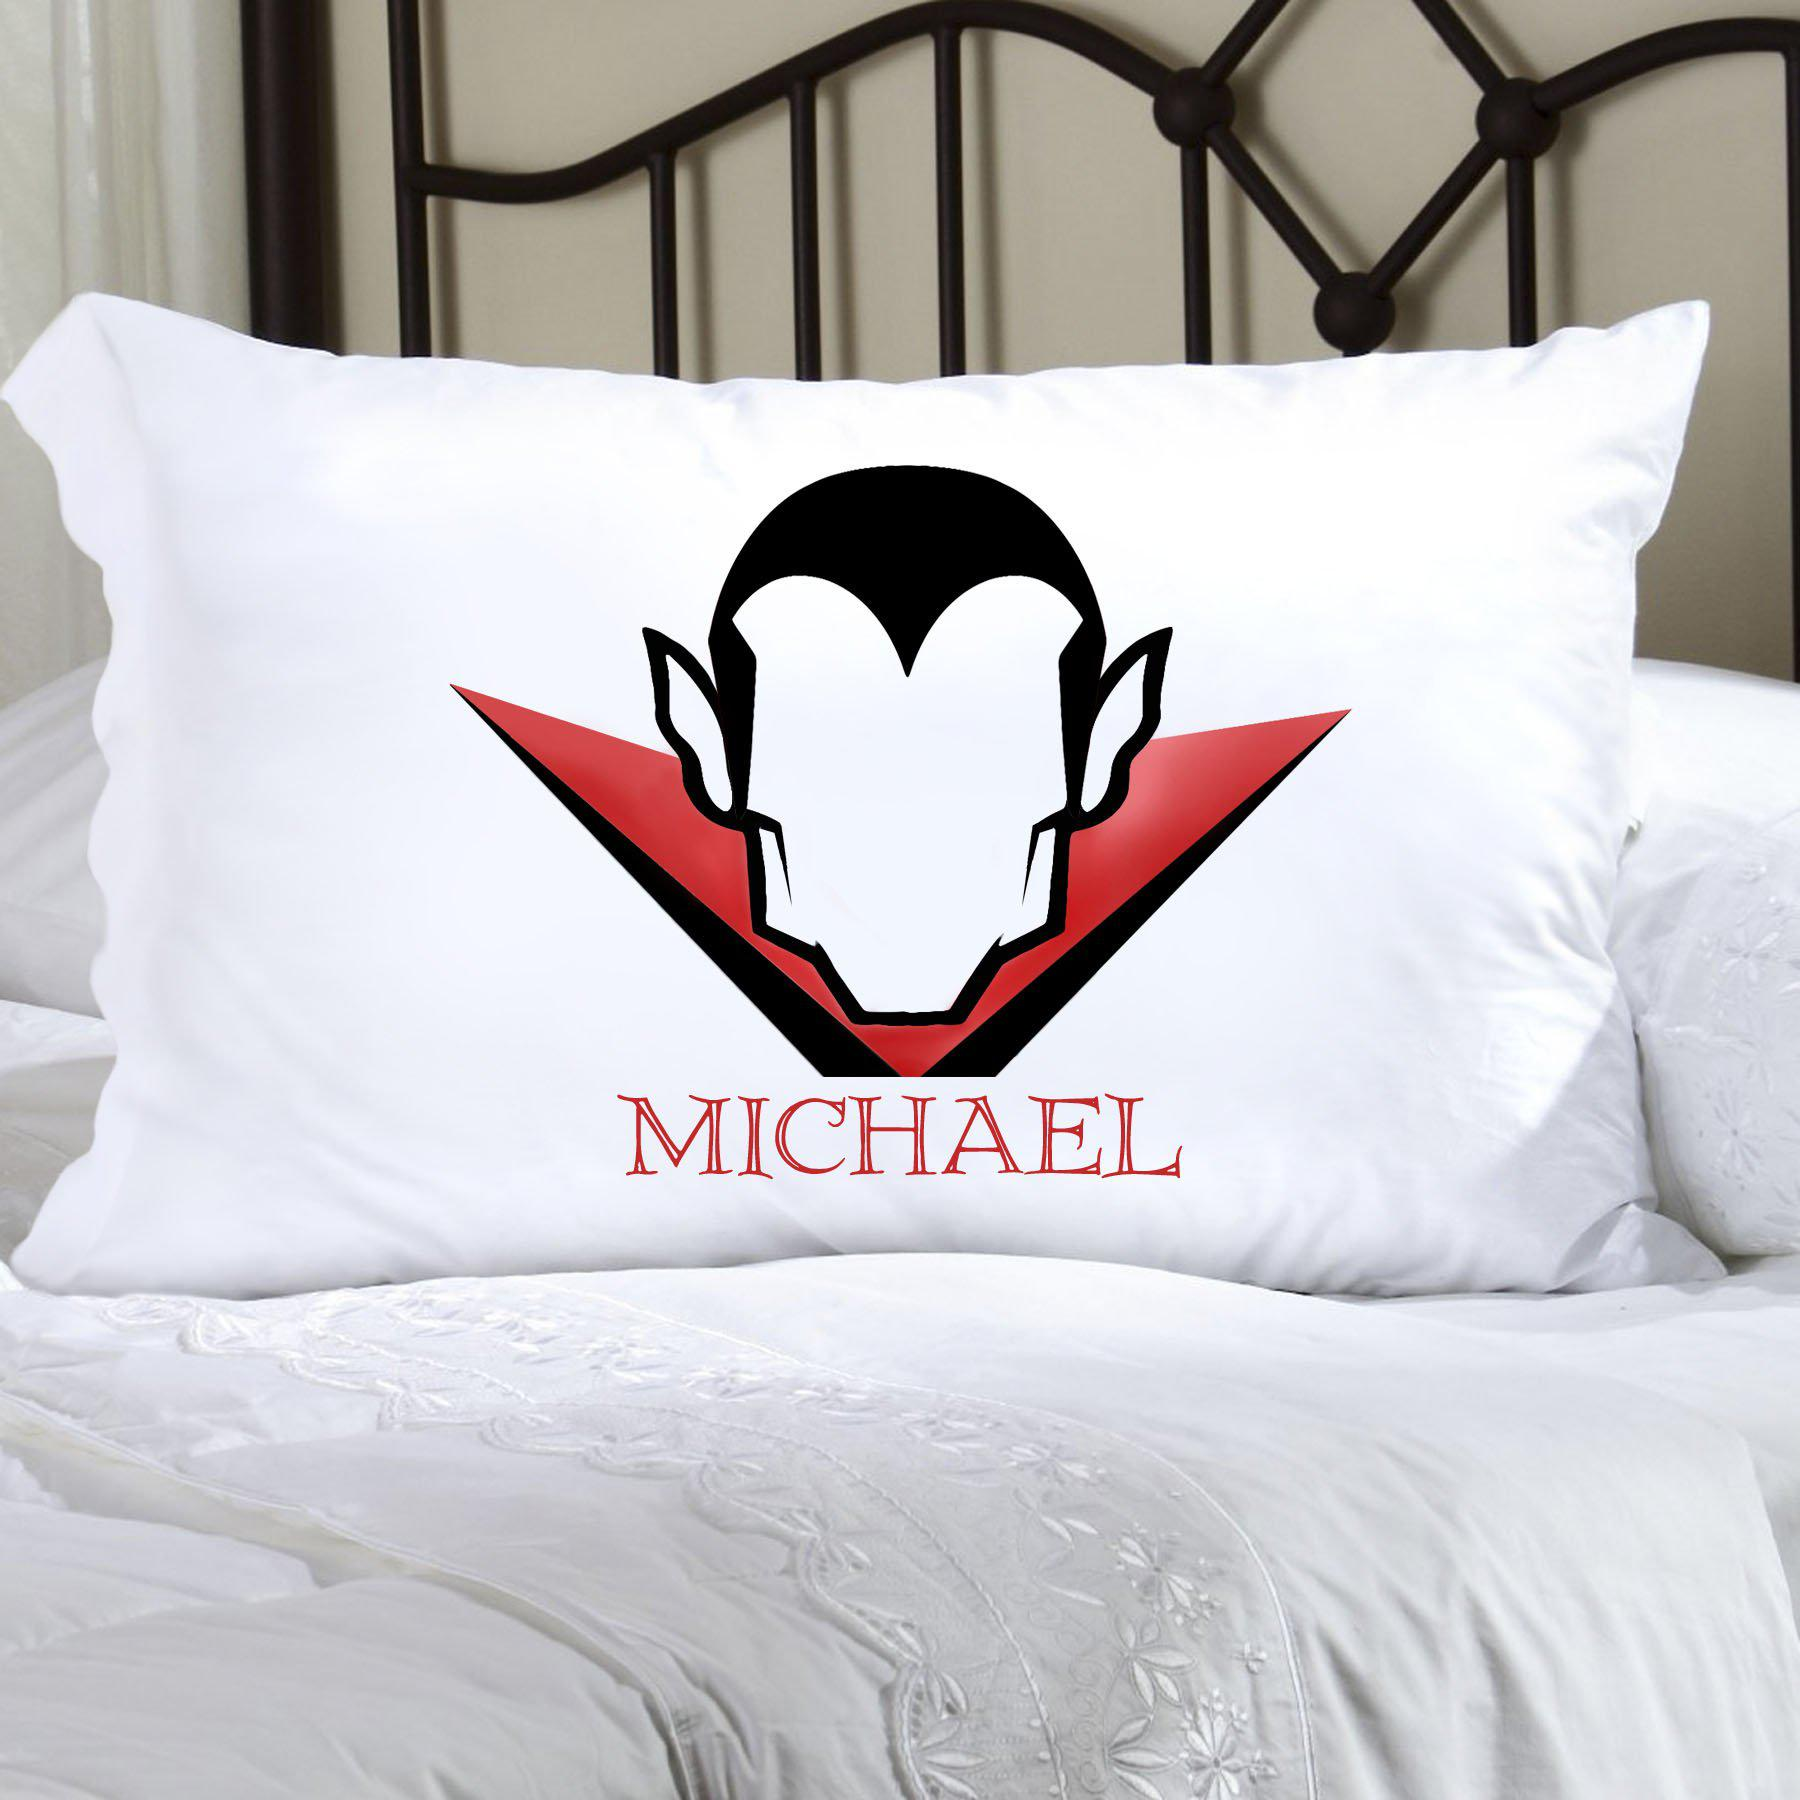 Personalized Halloween Character Pillowcases